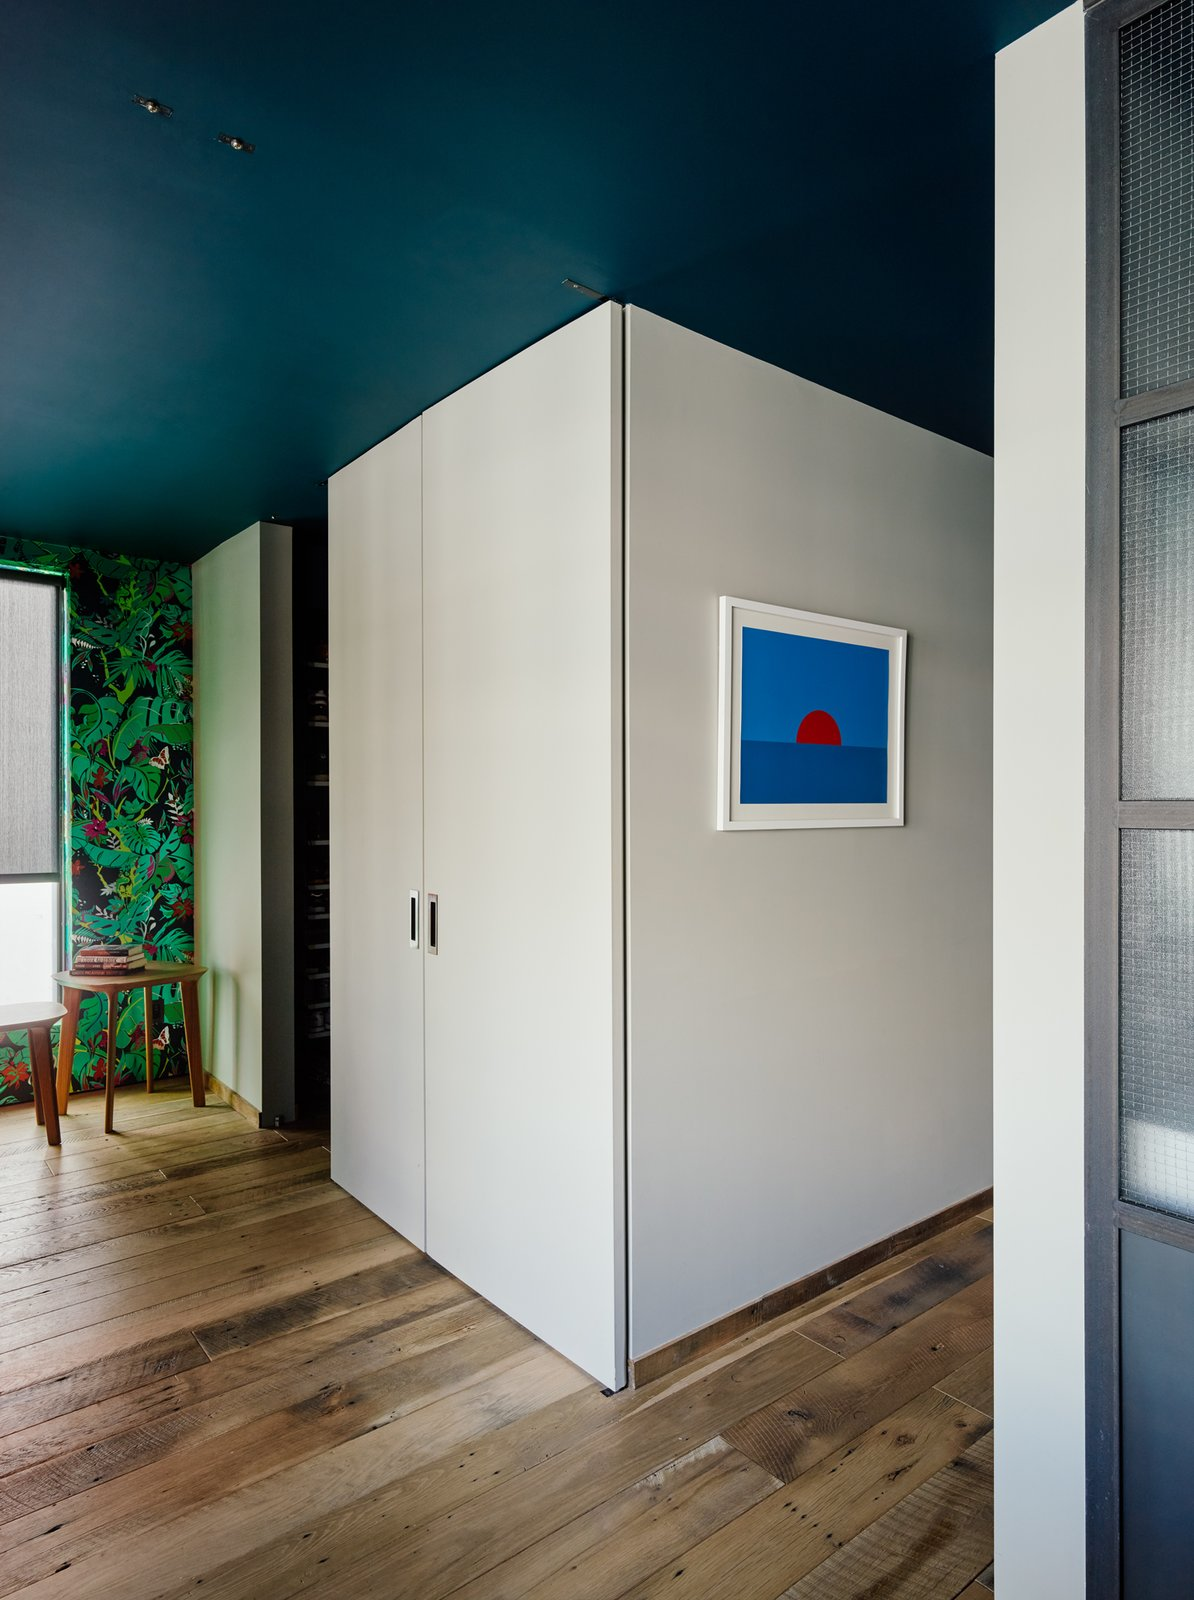 A system of full-height panel doors rotate in the space, closing off the bedroom and walk-in closet from the home office—a key feature for the residents, who often work from home.